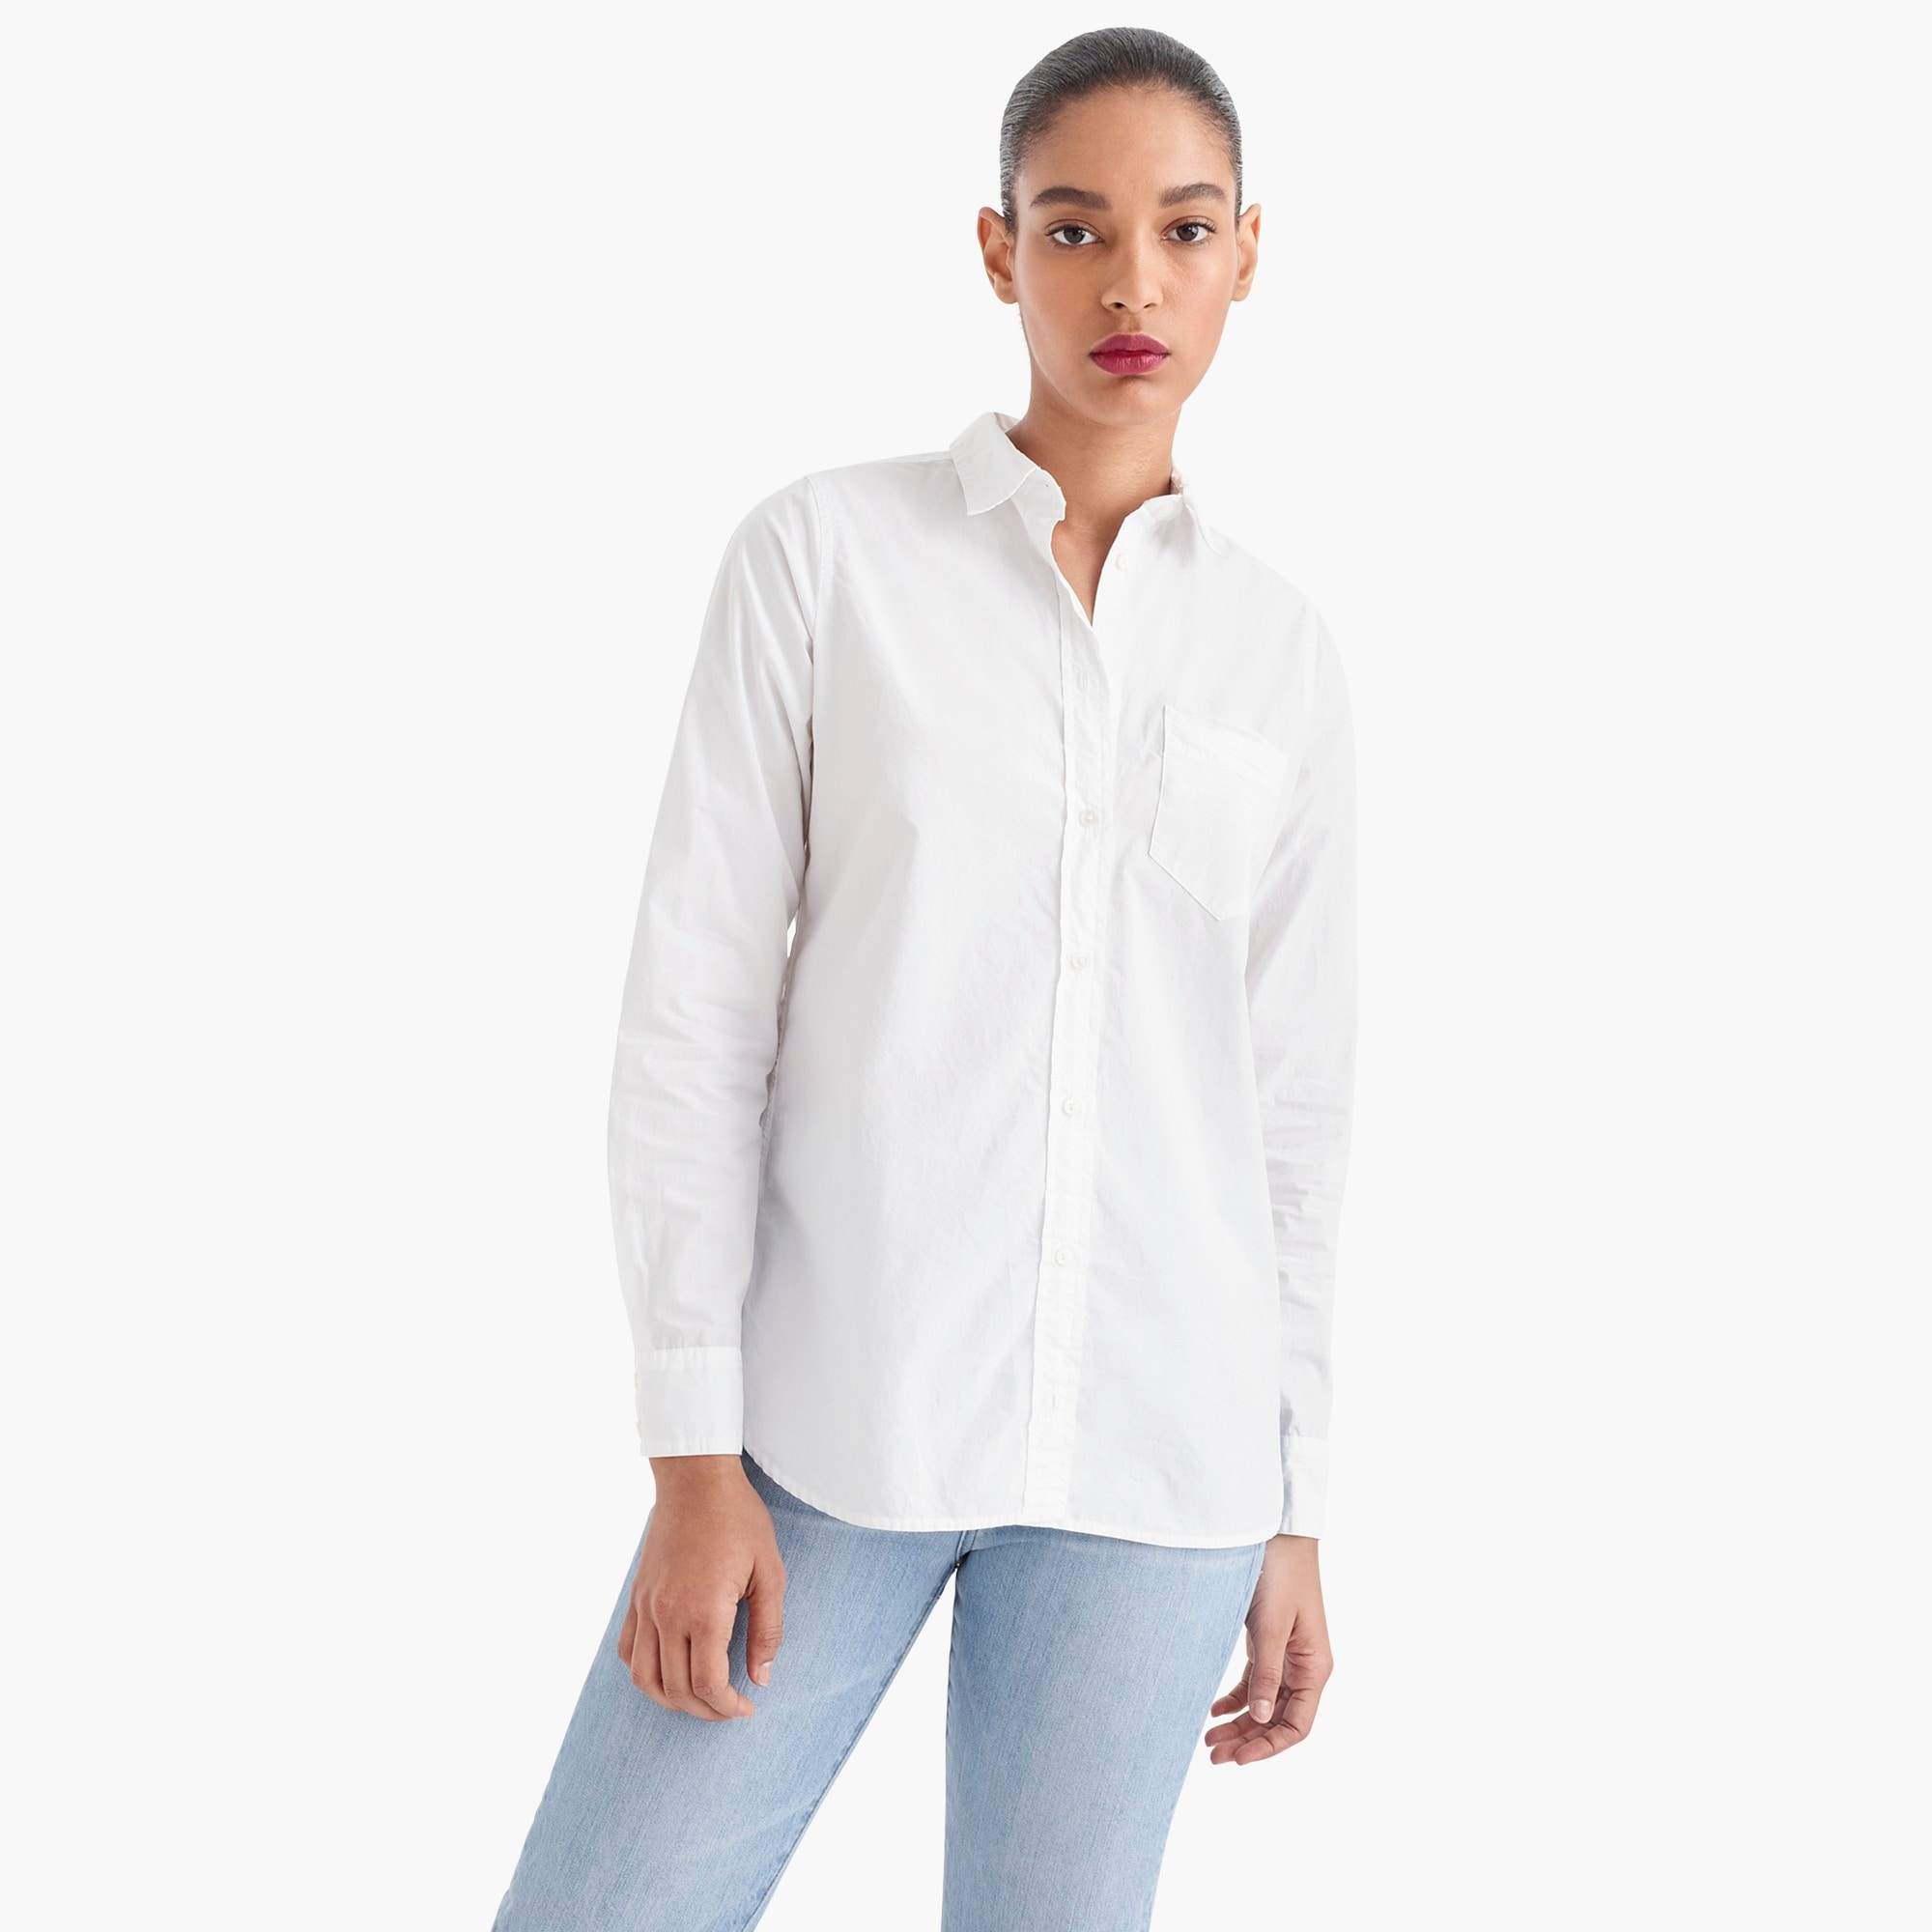 Image 3 for Tall classic-fit boy shirt in cotton poplin